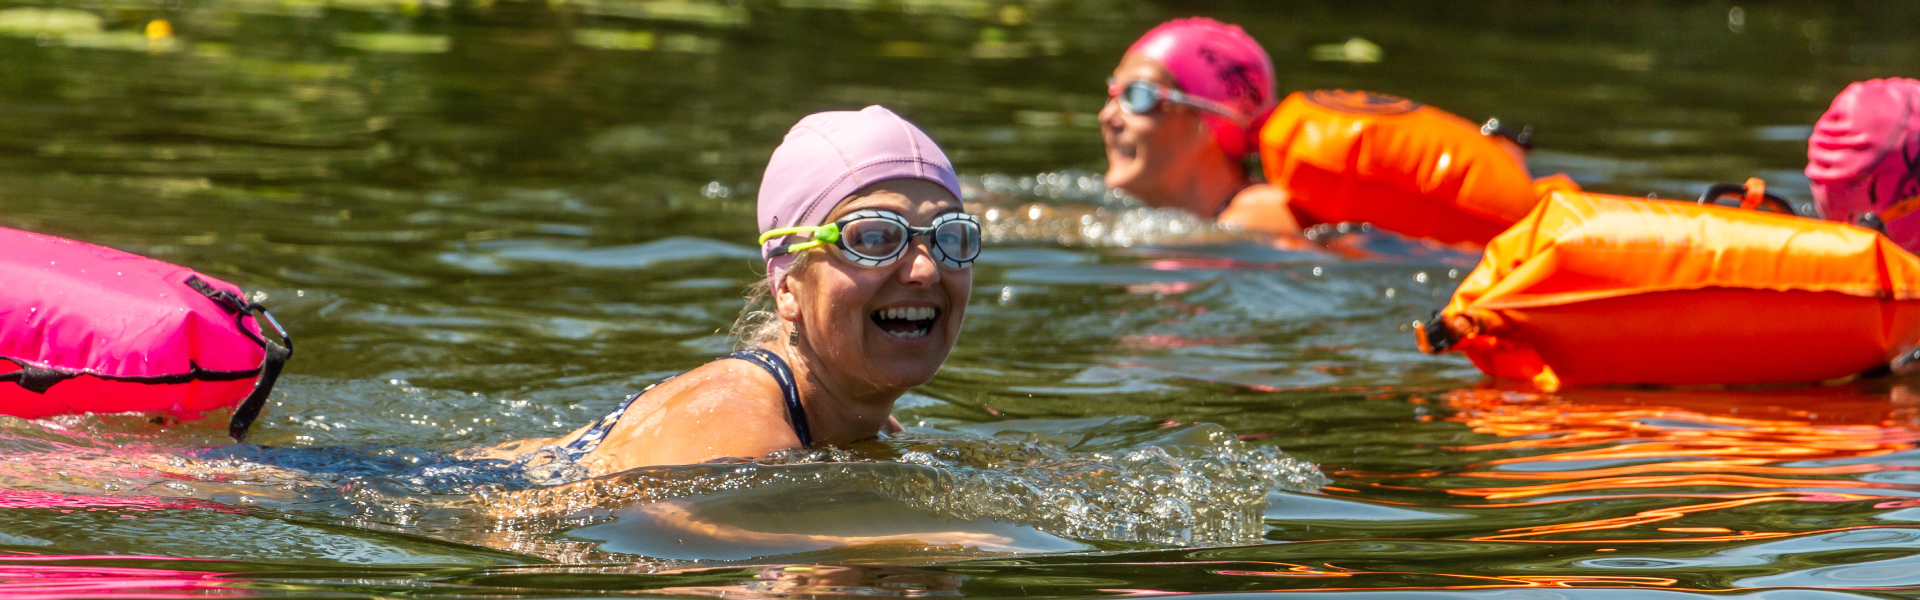 Open Water Swimming - Fear of the Unknown